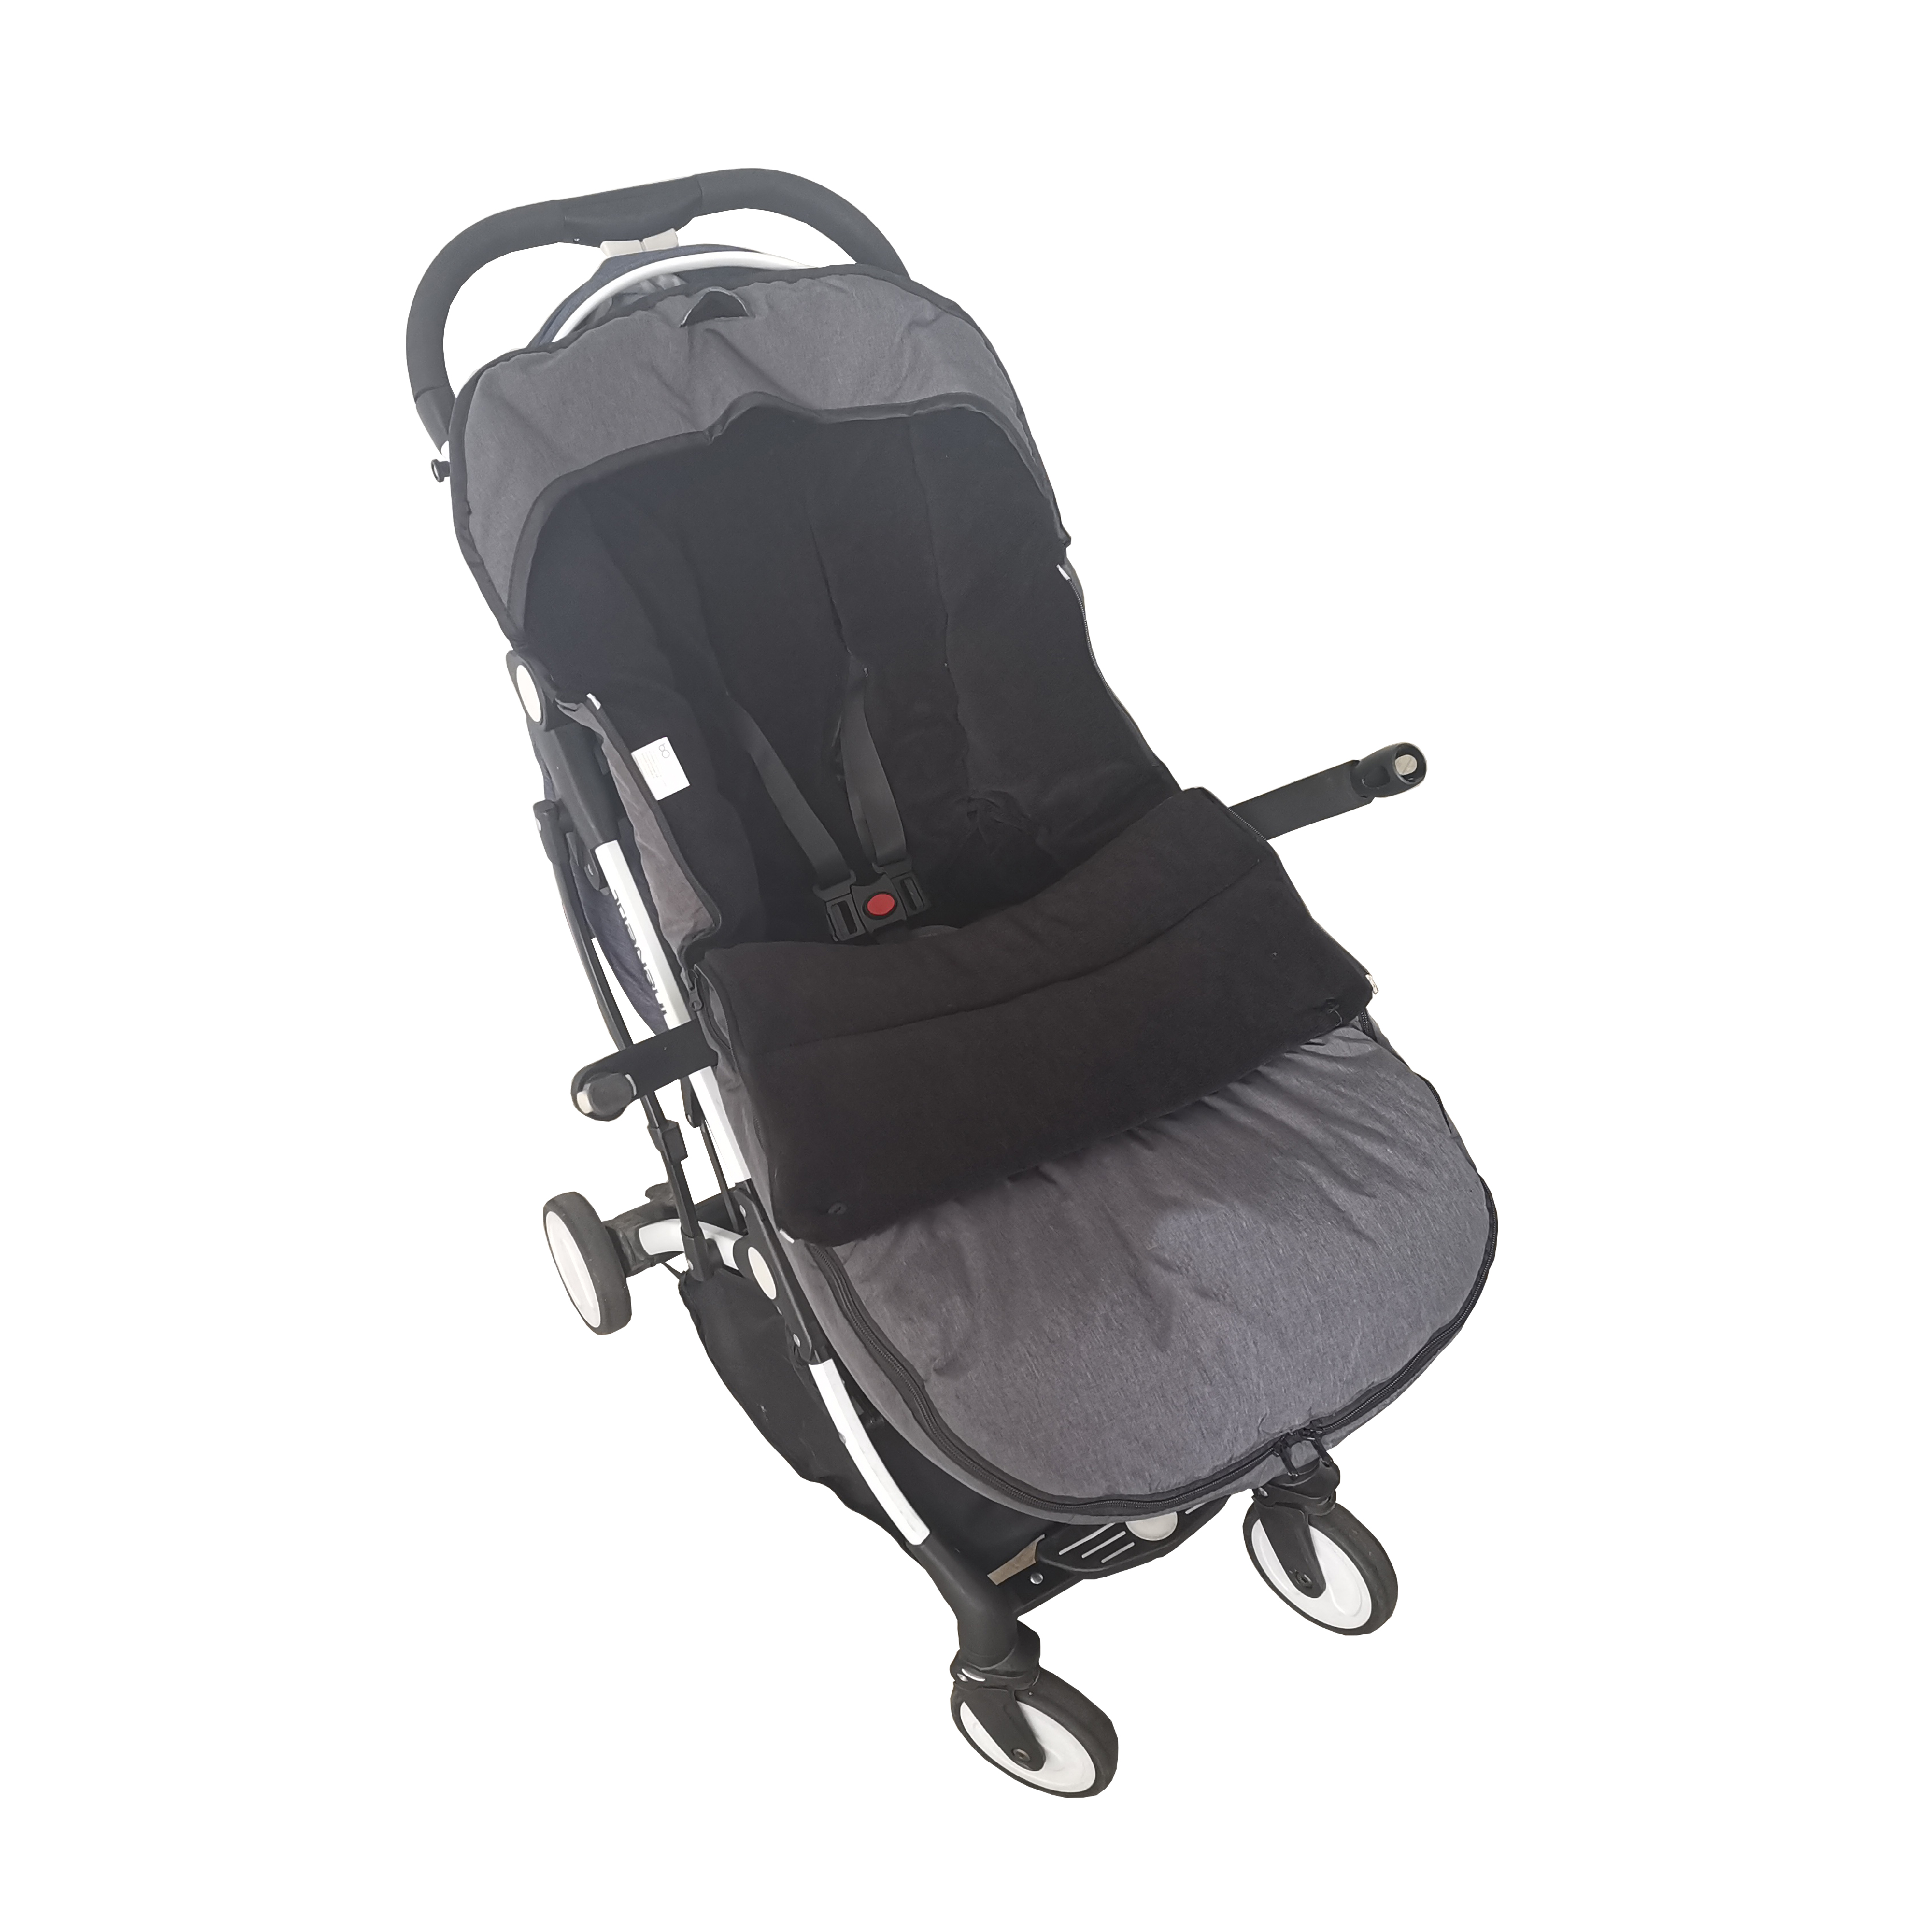 Baby stroller sleeping bag Featured Image